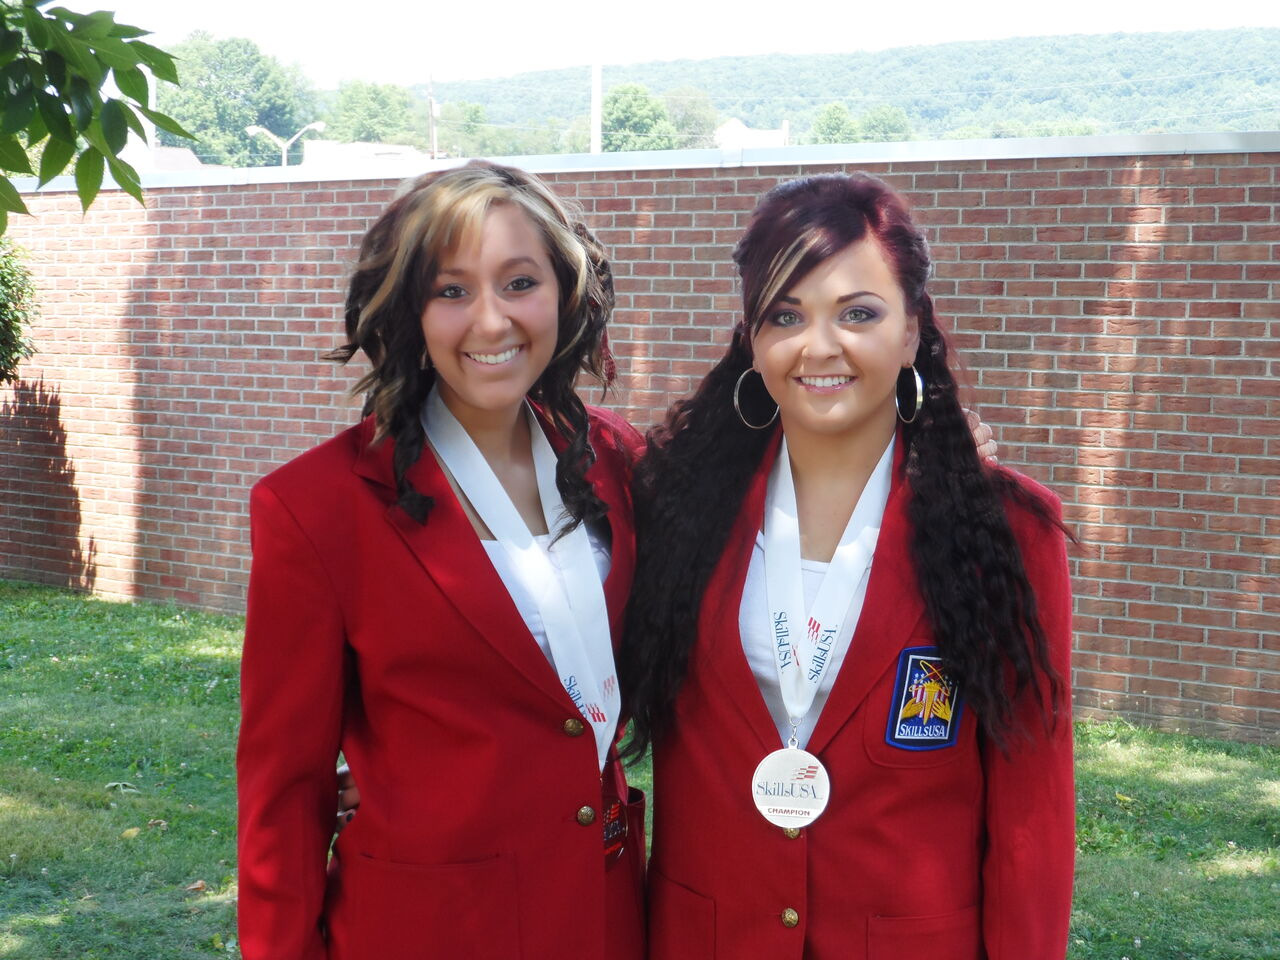 Skills USA Esthetics Silver Medal Winners: Model, Jenna Swinehart and Competitor, Alexa Krautheim.